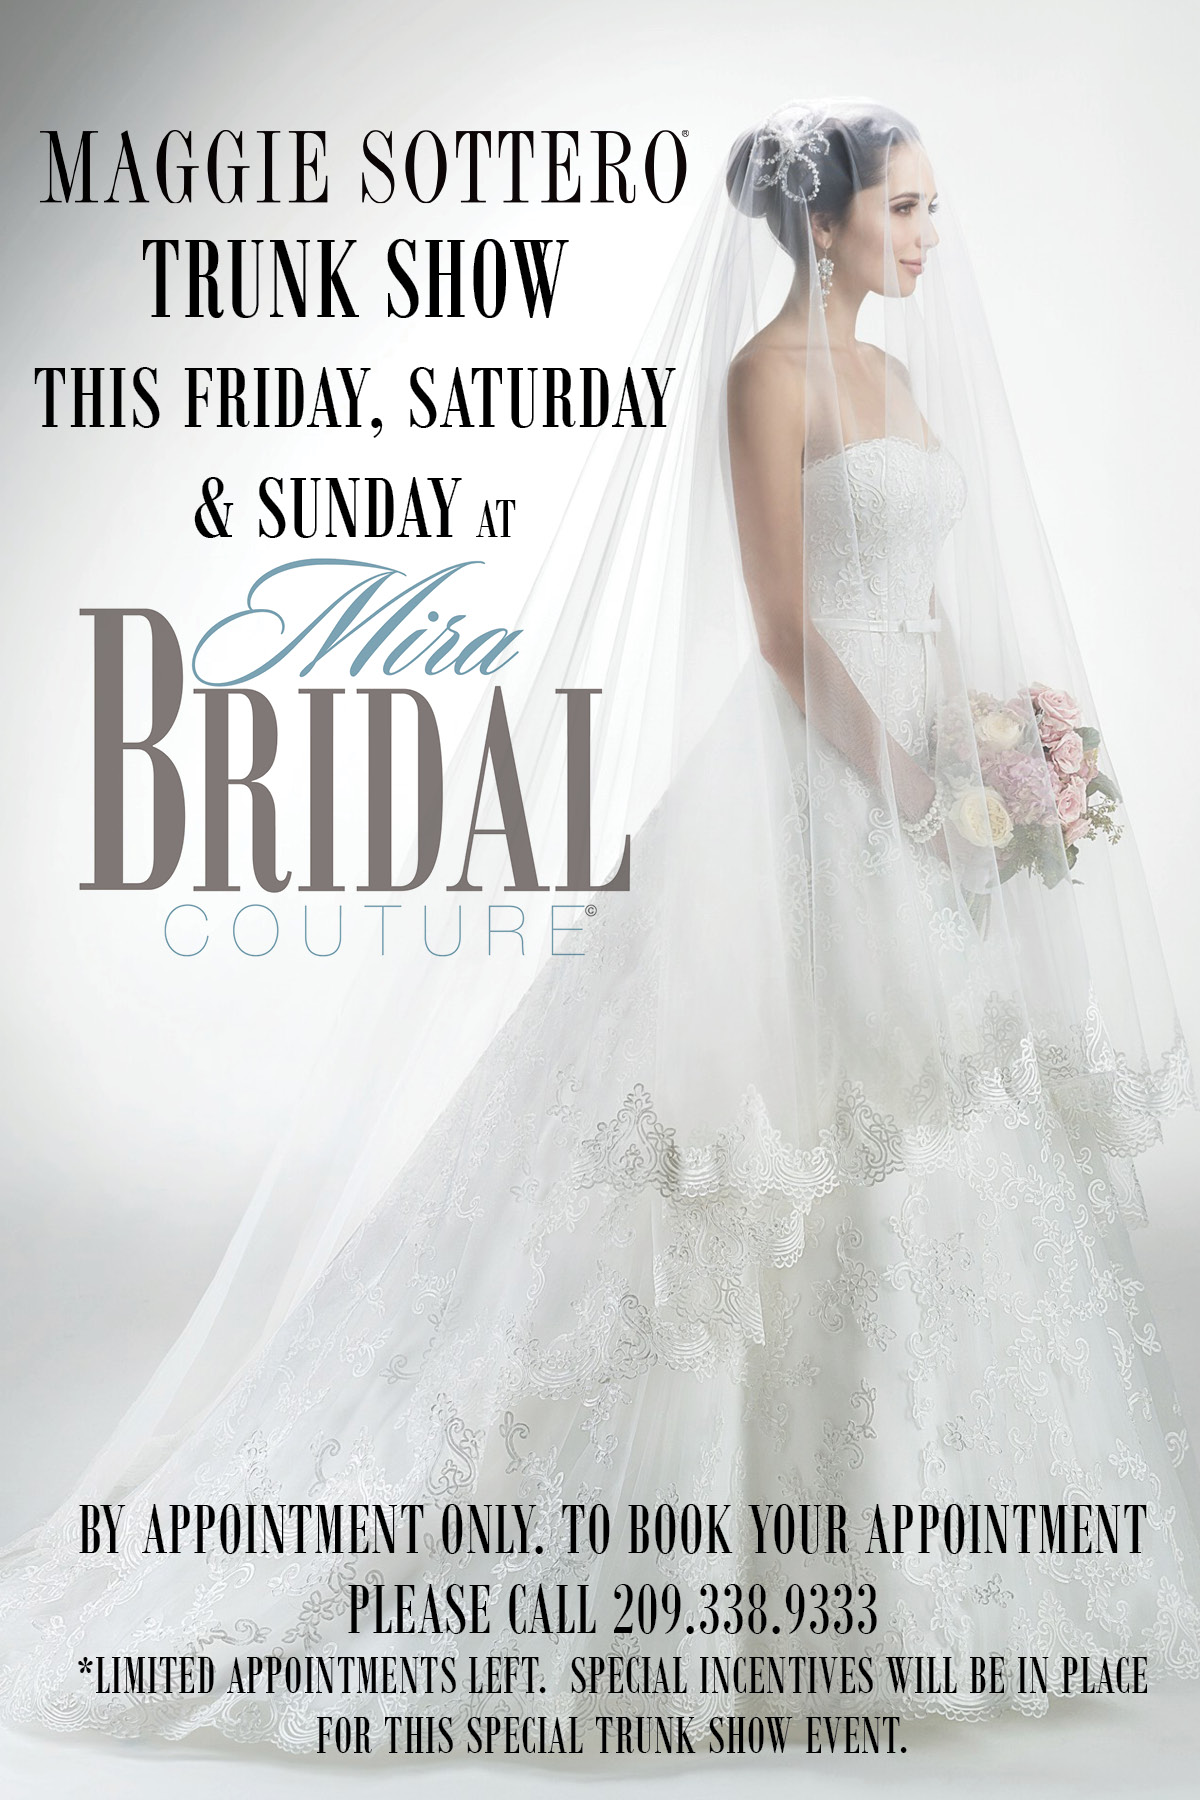 Maggie Sottero Trunk Show with Mira Bridal Couture